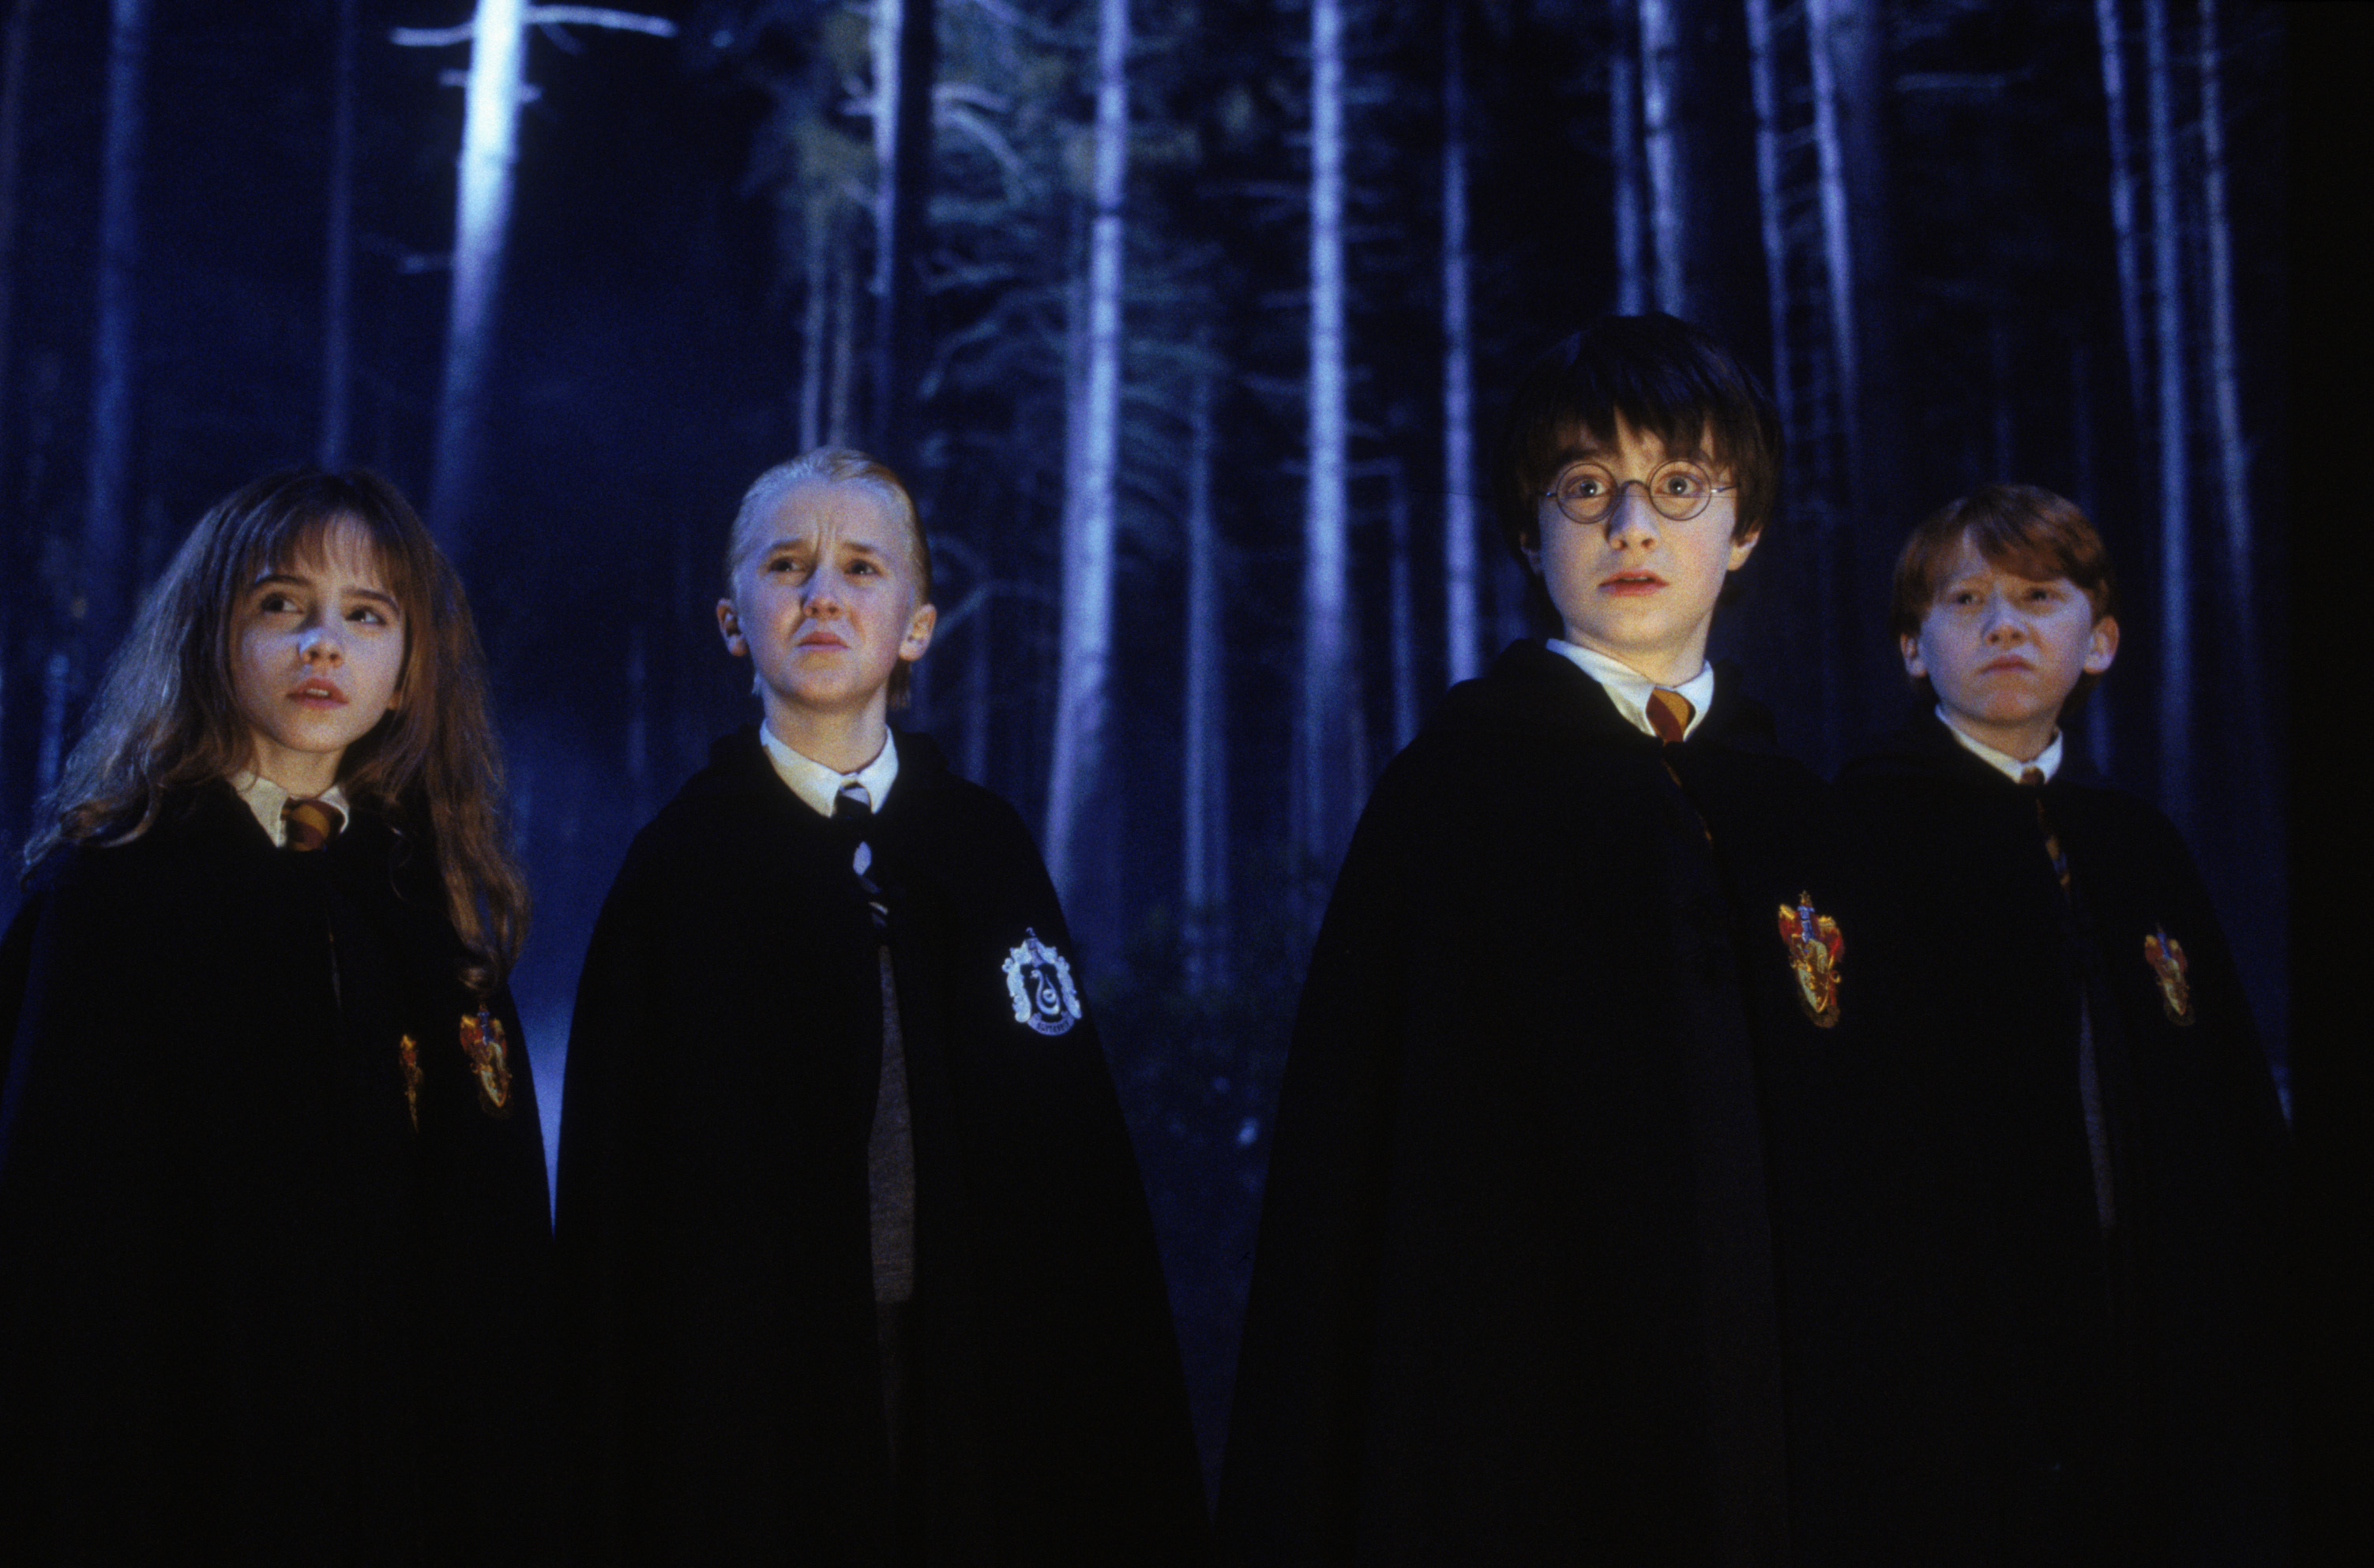 What the Forbidden Forest reveals about Harry Potter characters